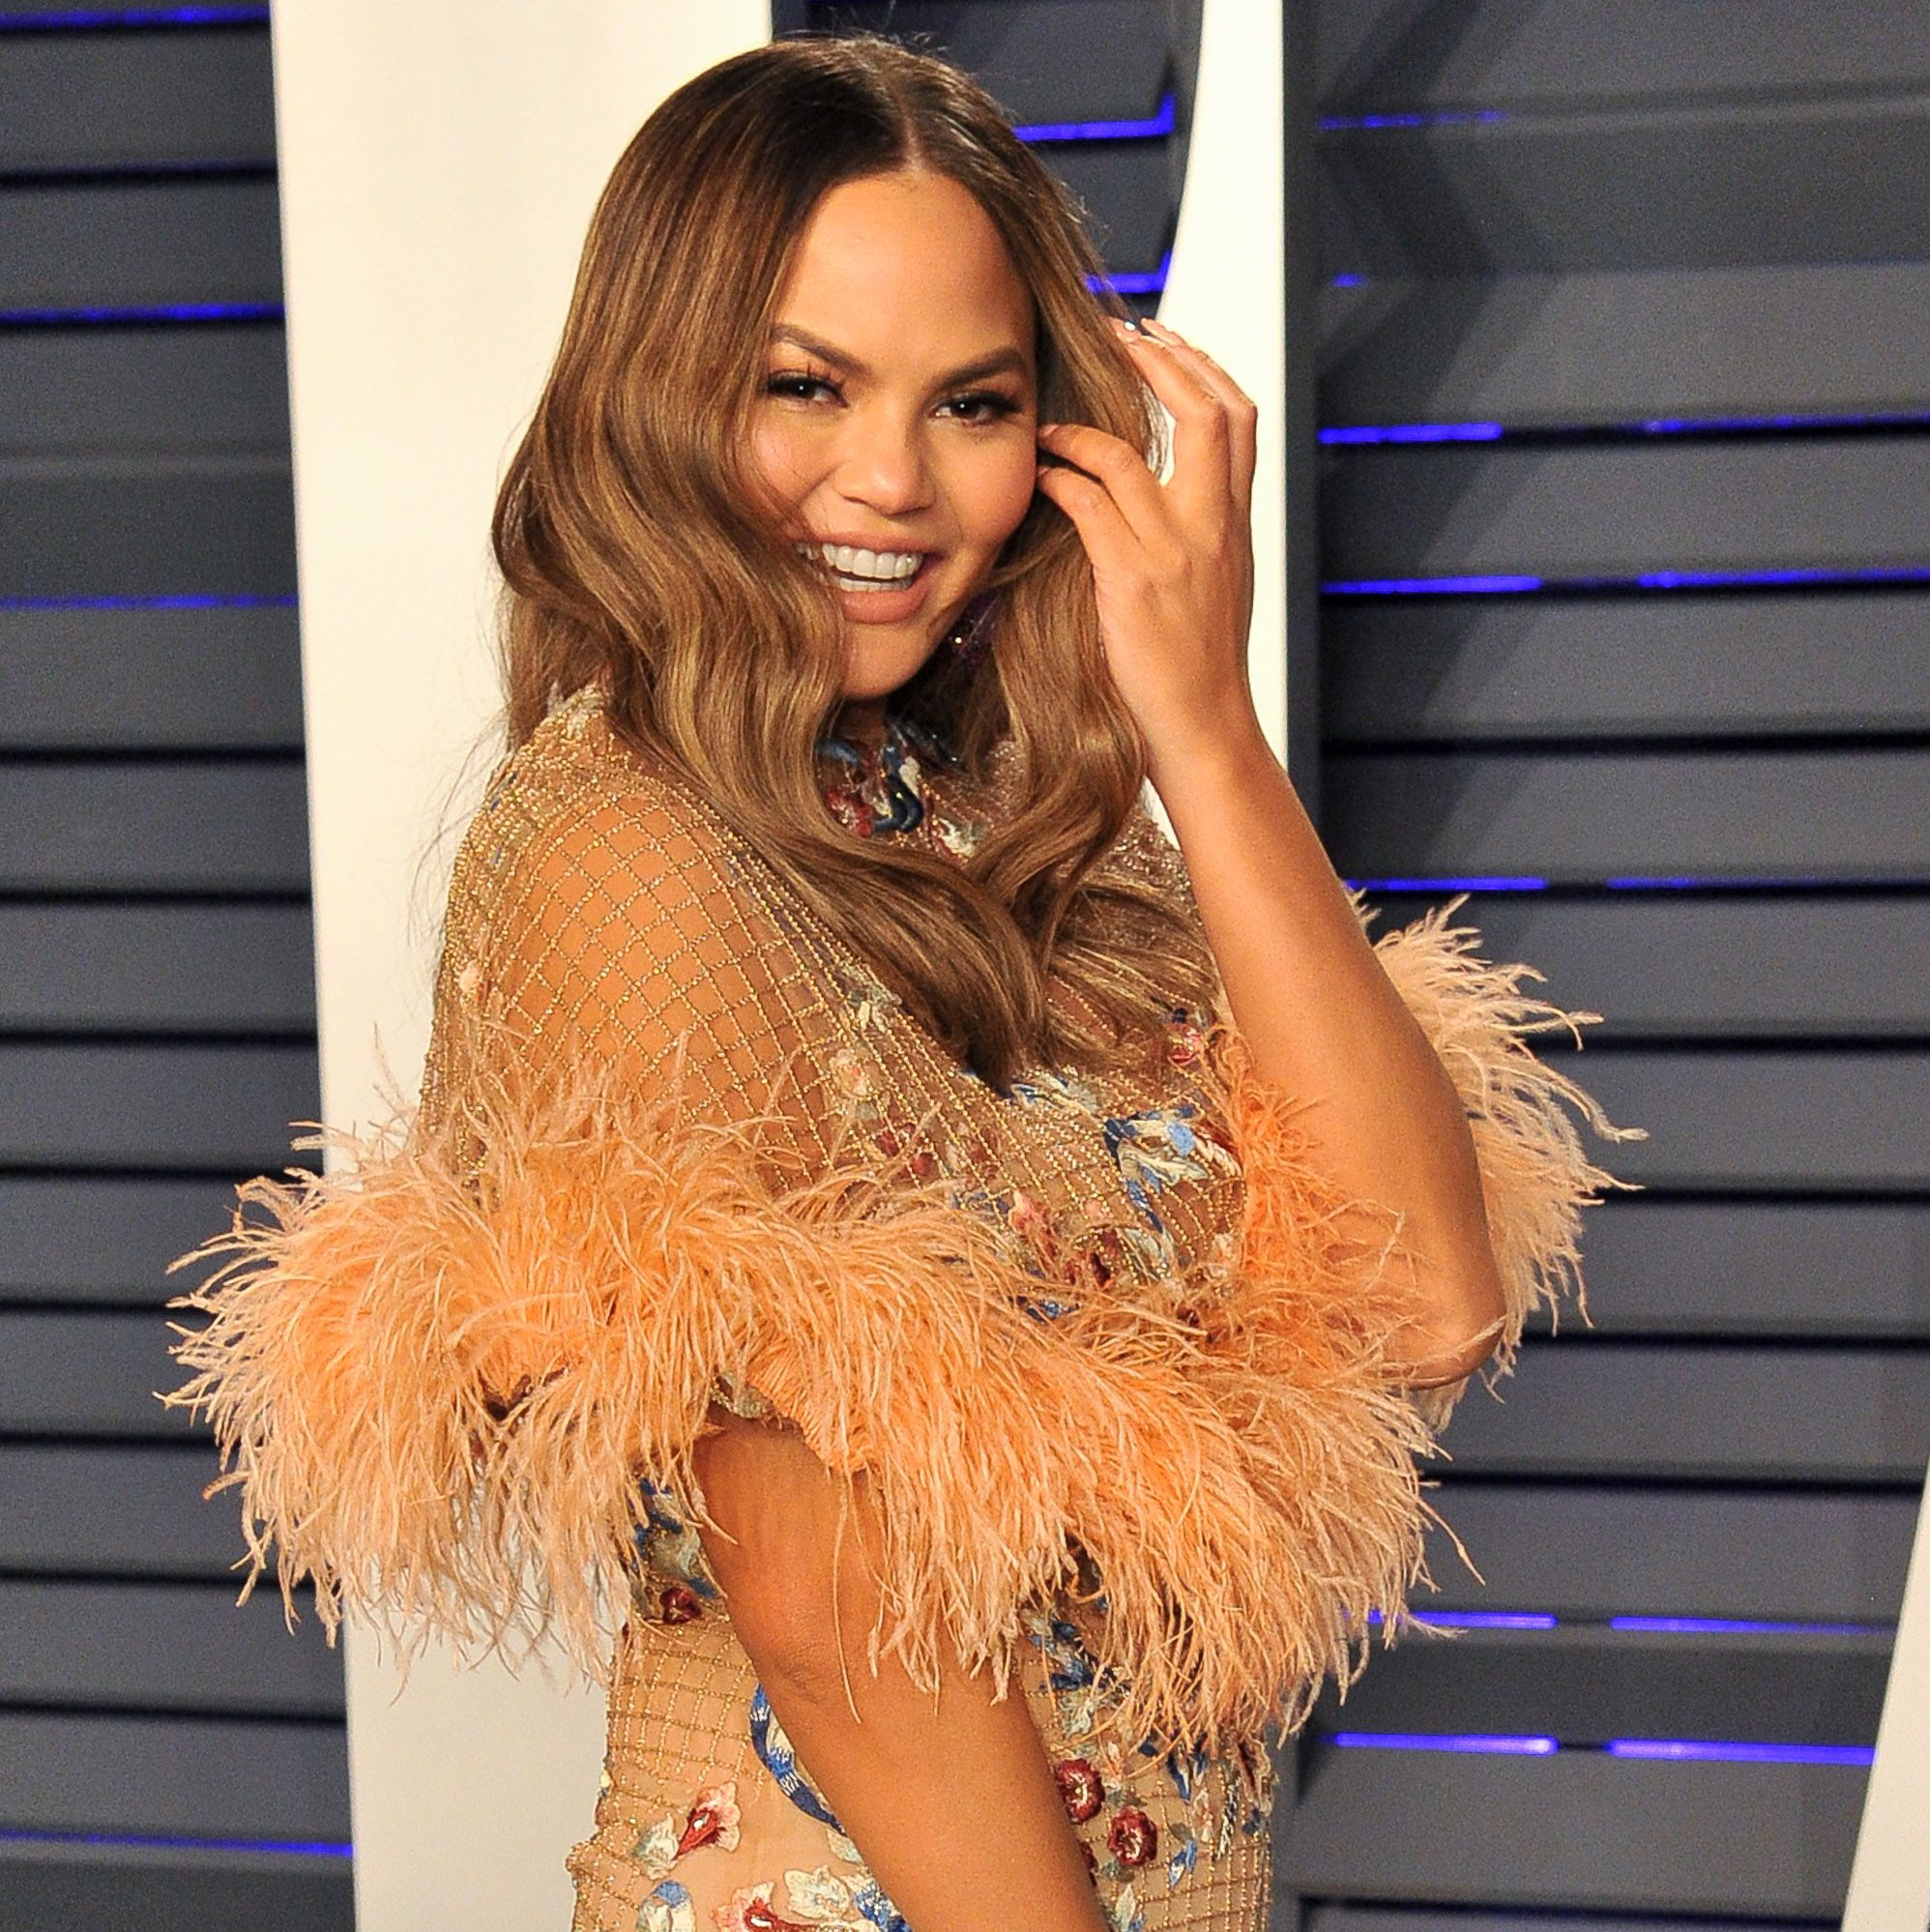 Chrissy Teigen Got an 80's Inspired Bob Hair Makeover and We All Missed it